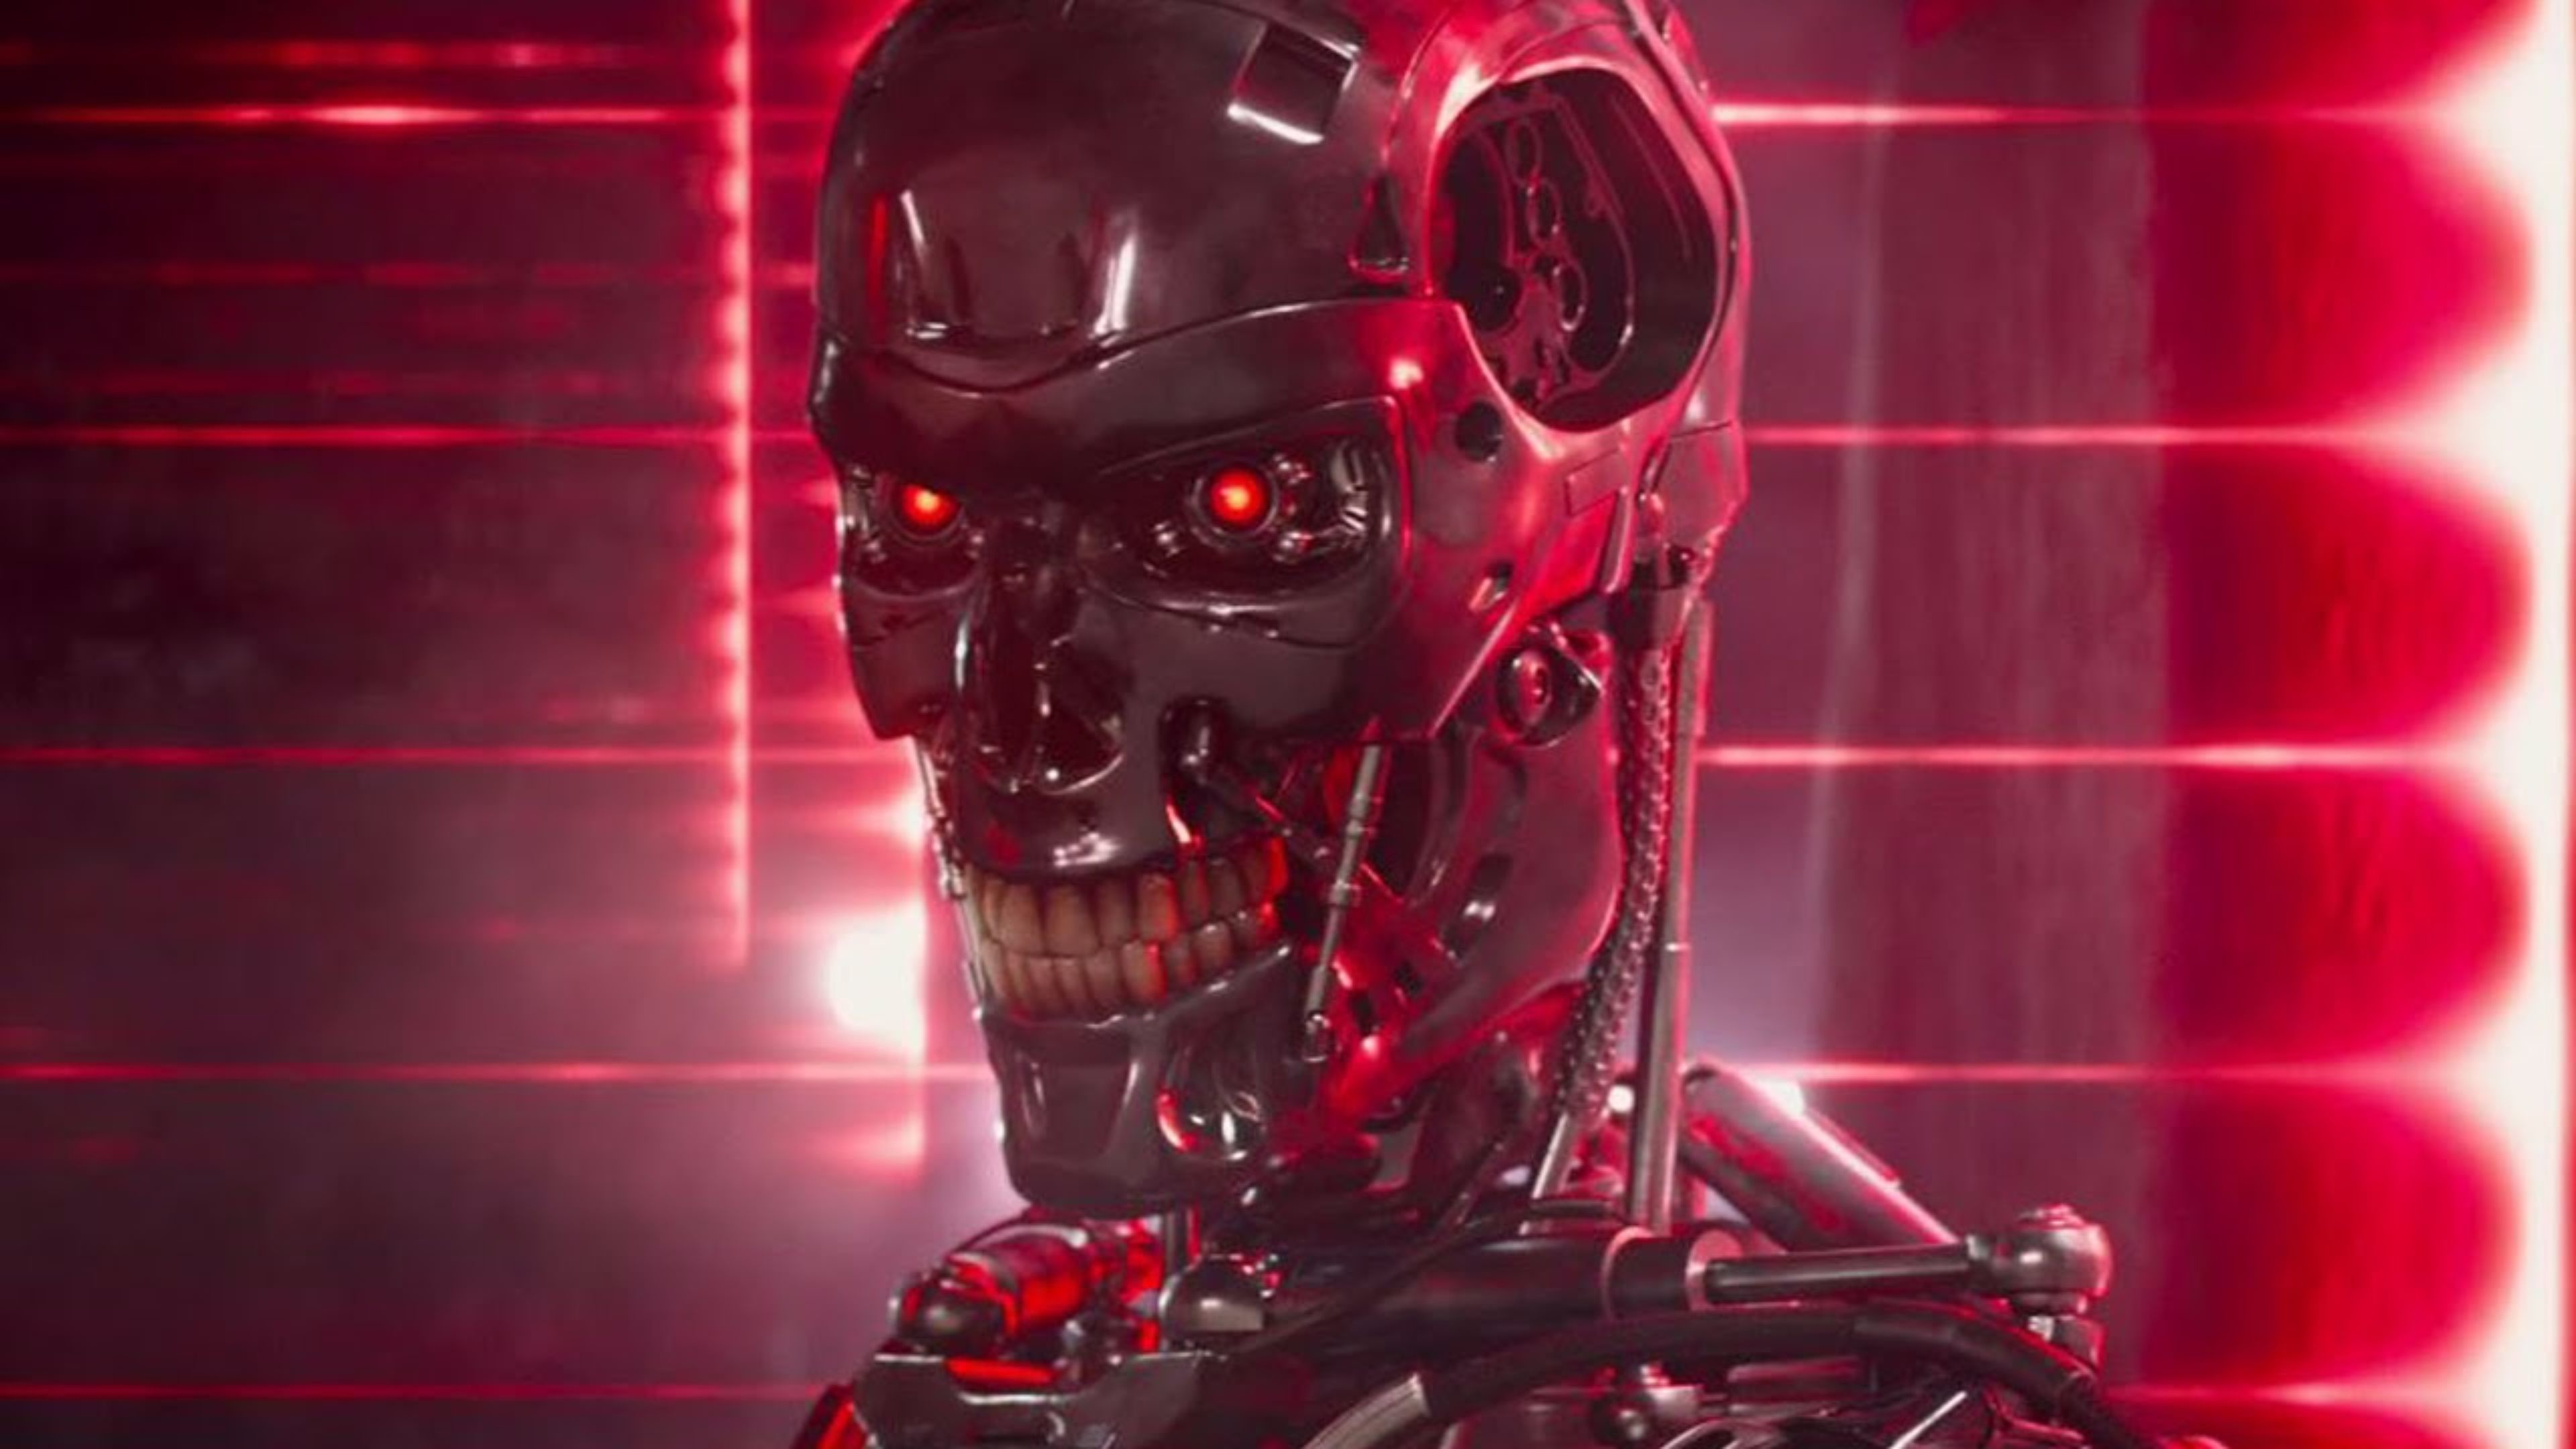 3840x2160 Launch Reveal Terminator Genisys 4K Wallpaper